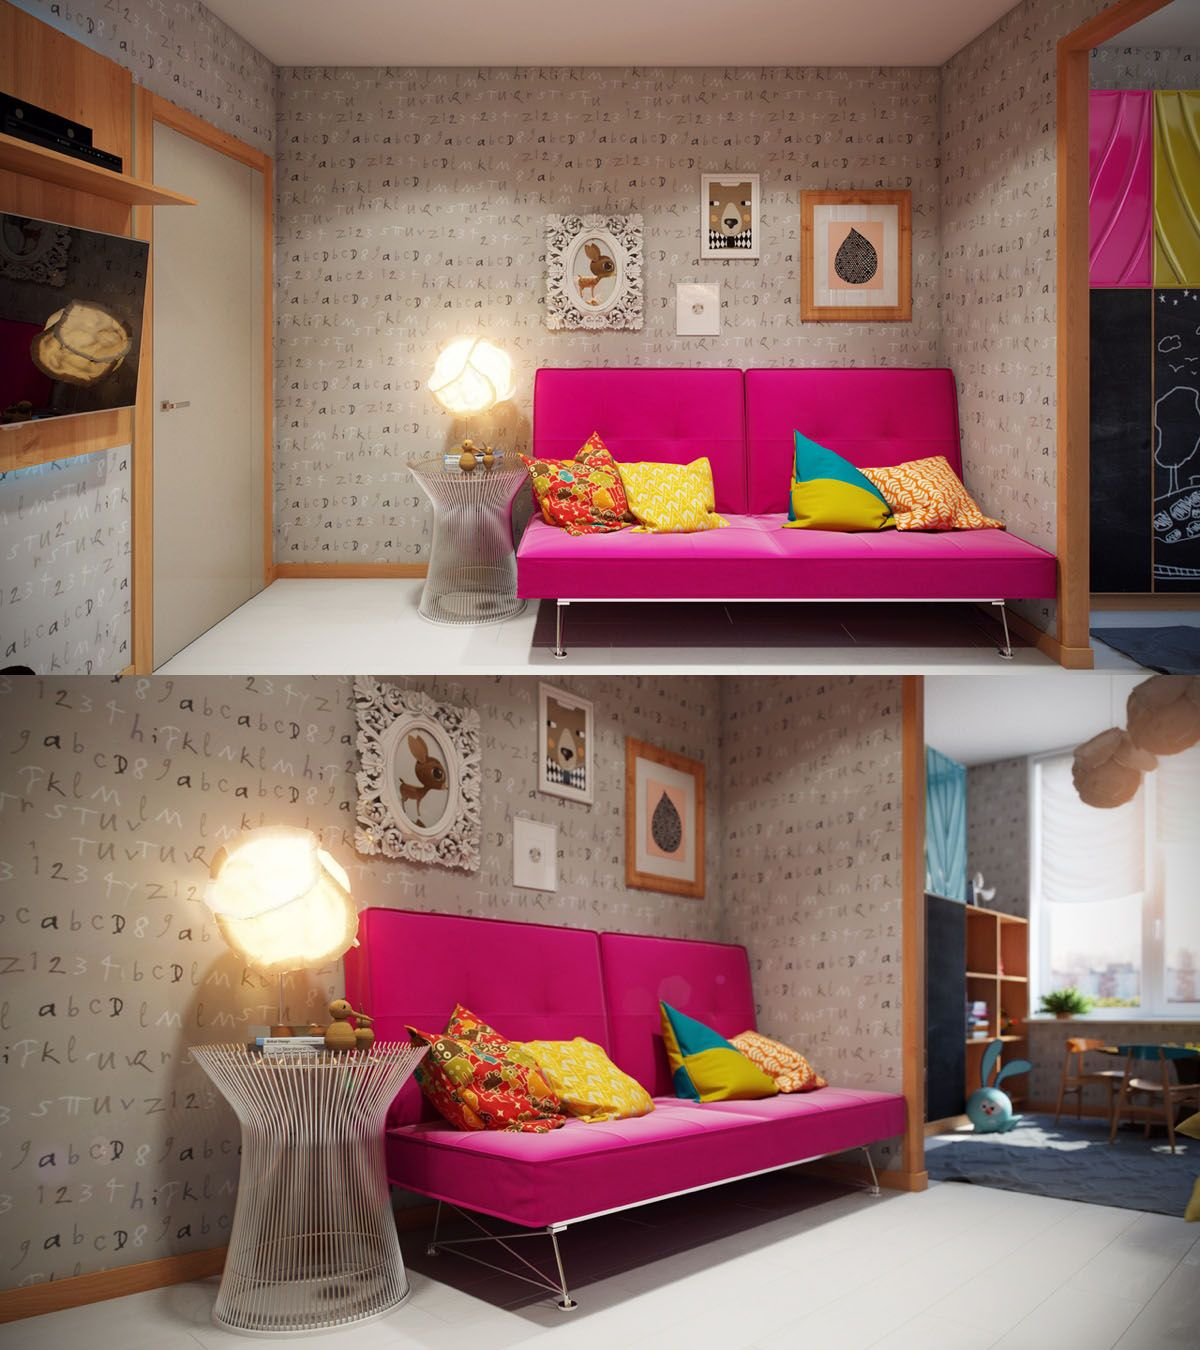 bright and colorful kids room designs with whimsical artistic rh pinterest com Rooms with Futon Design Futon Media Wall Unit